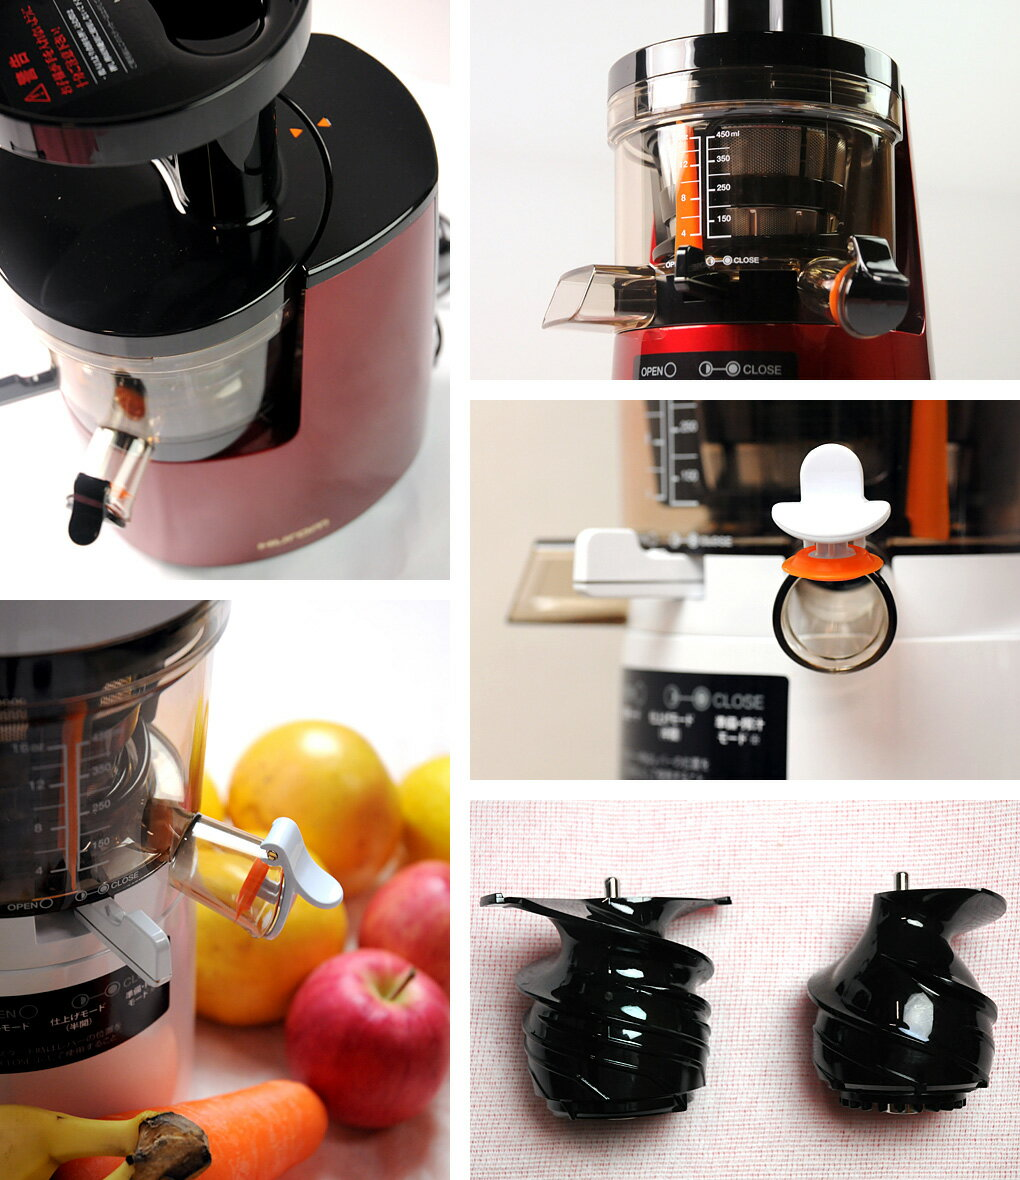 Hurom Slow Juicer New Zealand : Smart Kitchen Rakuten Global Market: HUROM slow juicer H2H and Hulme